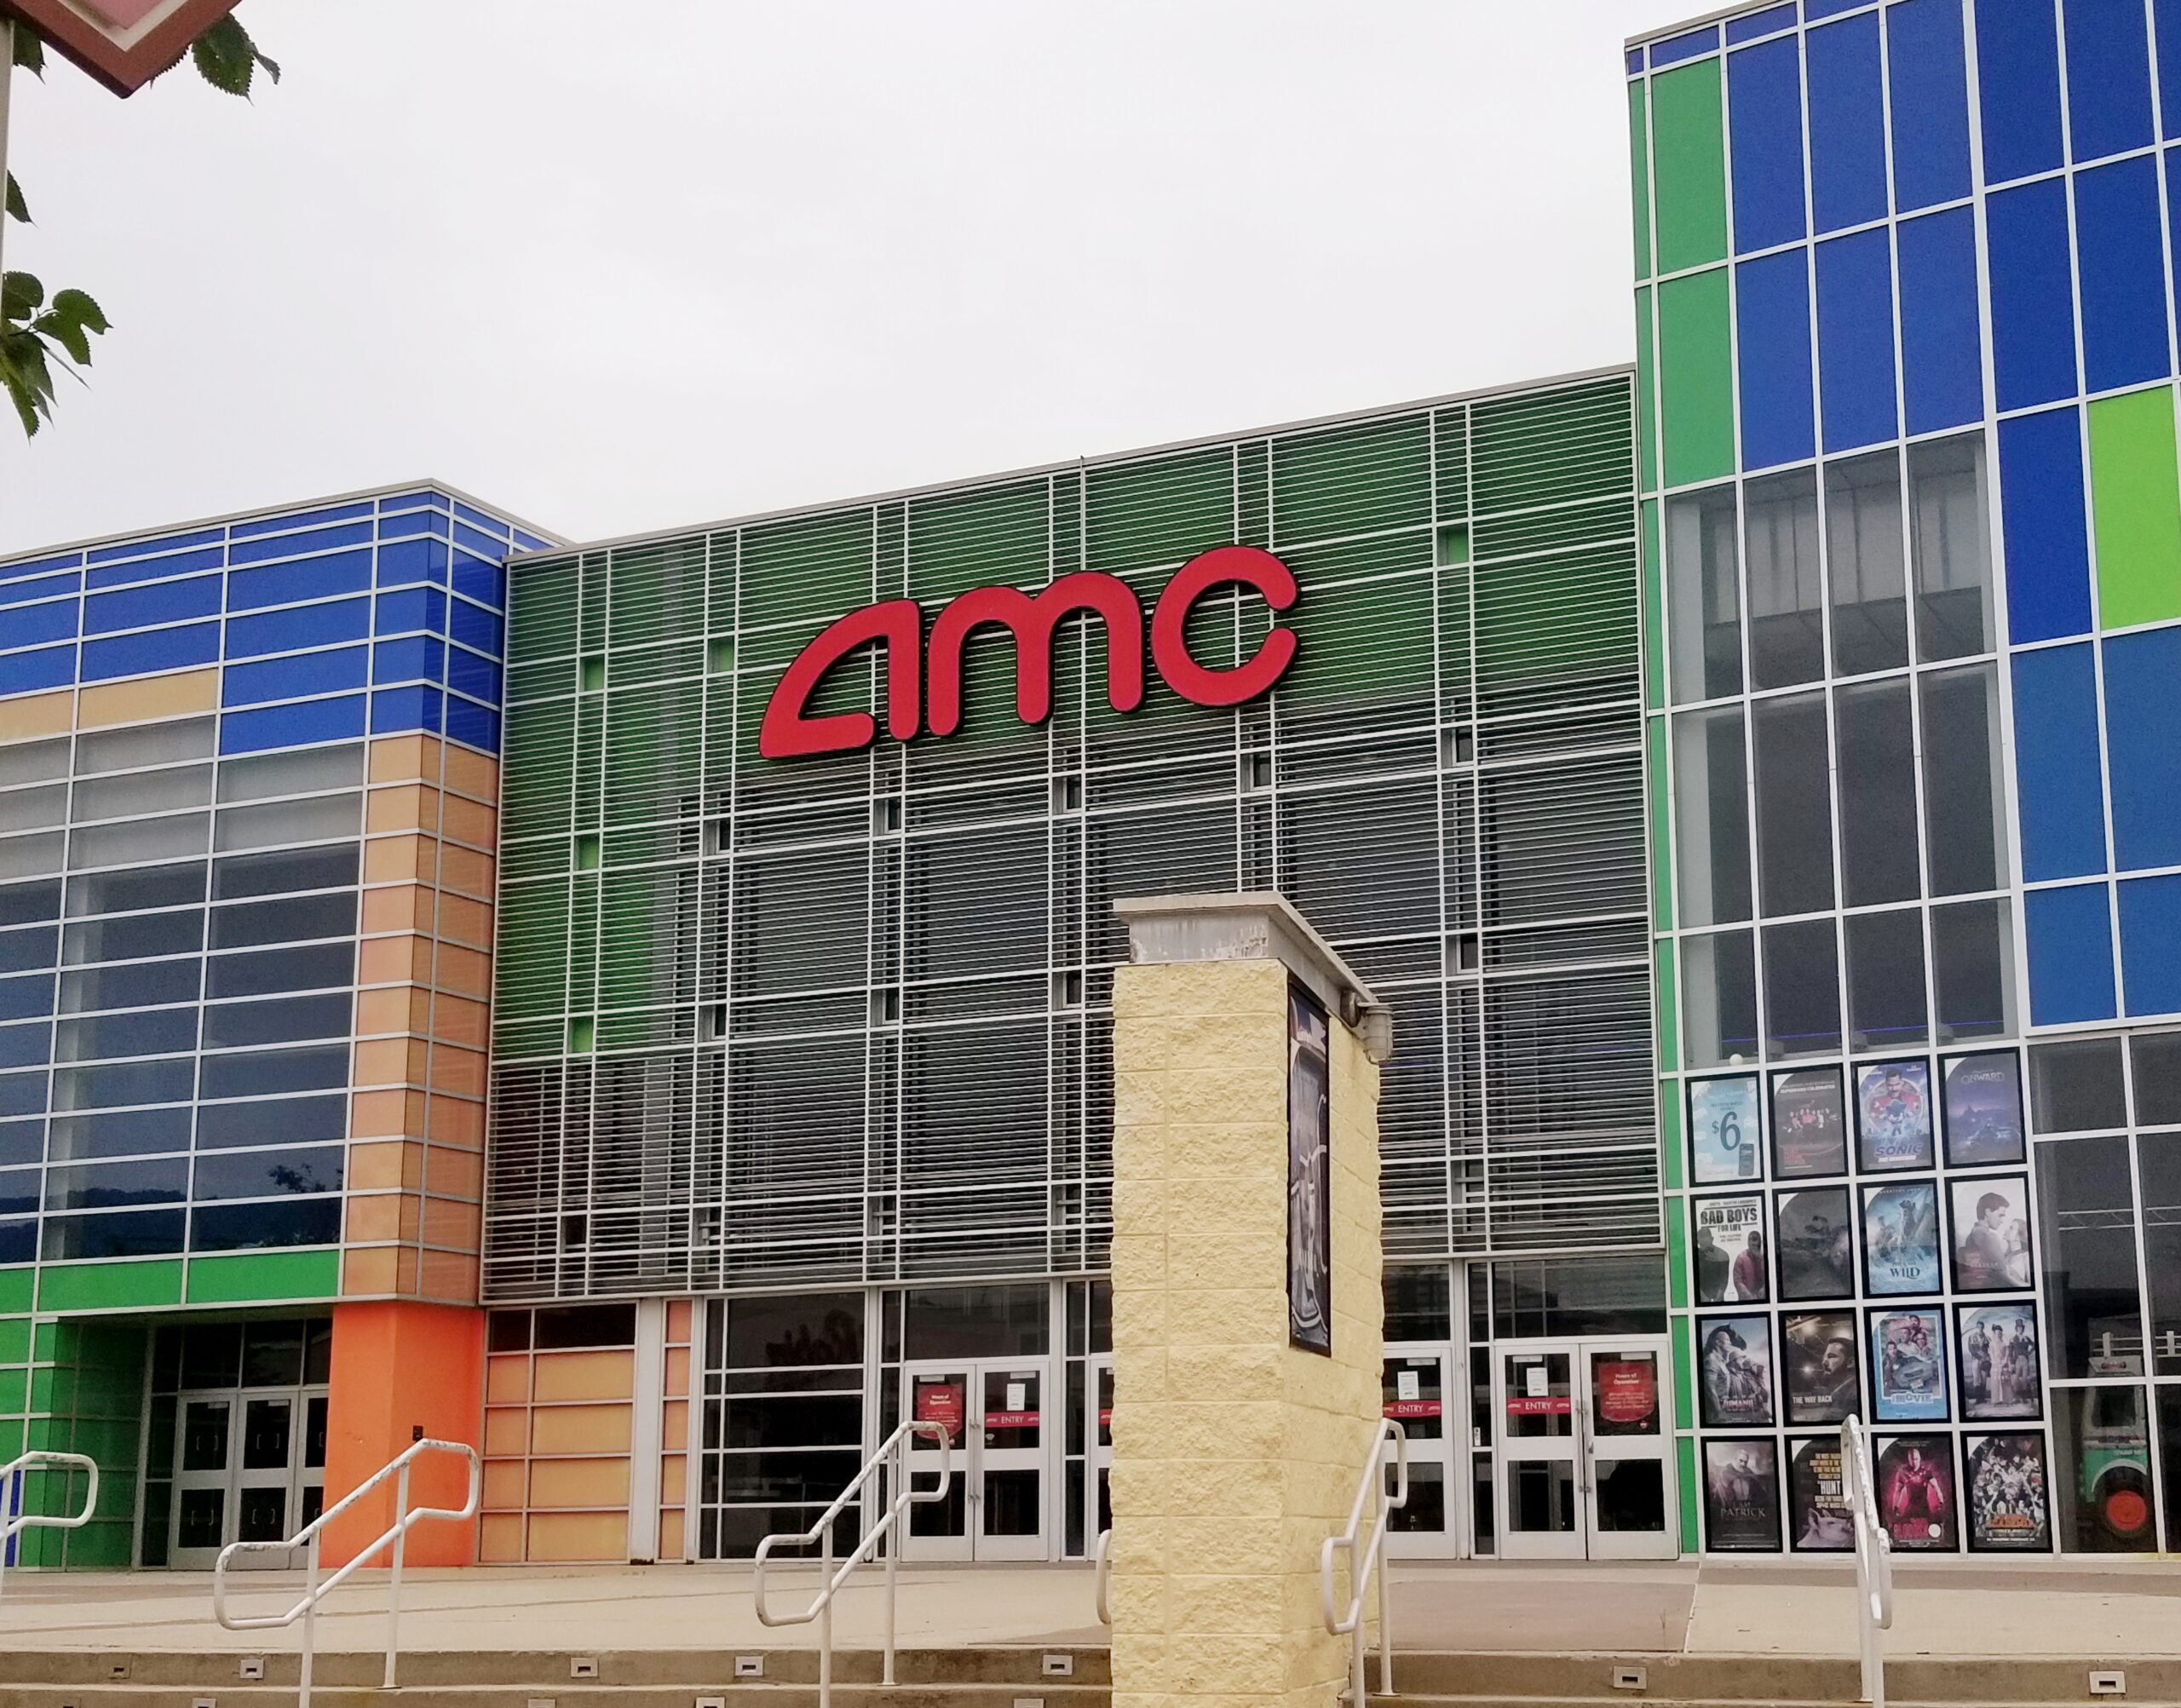 Amc Theatre In Promenade Shops To Reopen With 15 Cent Movies